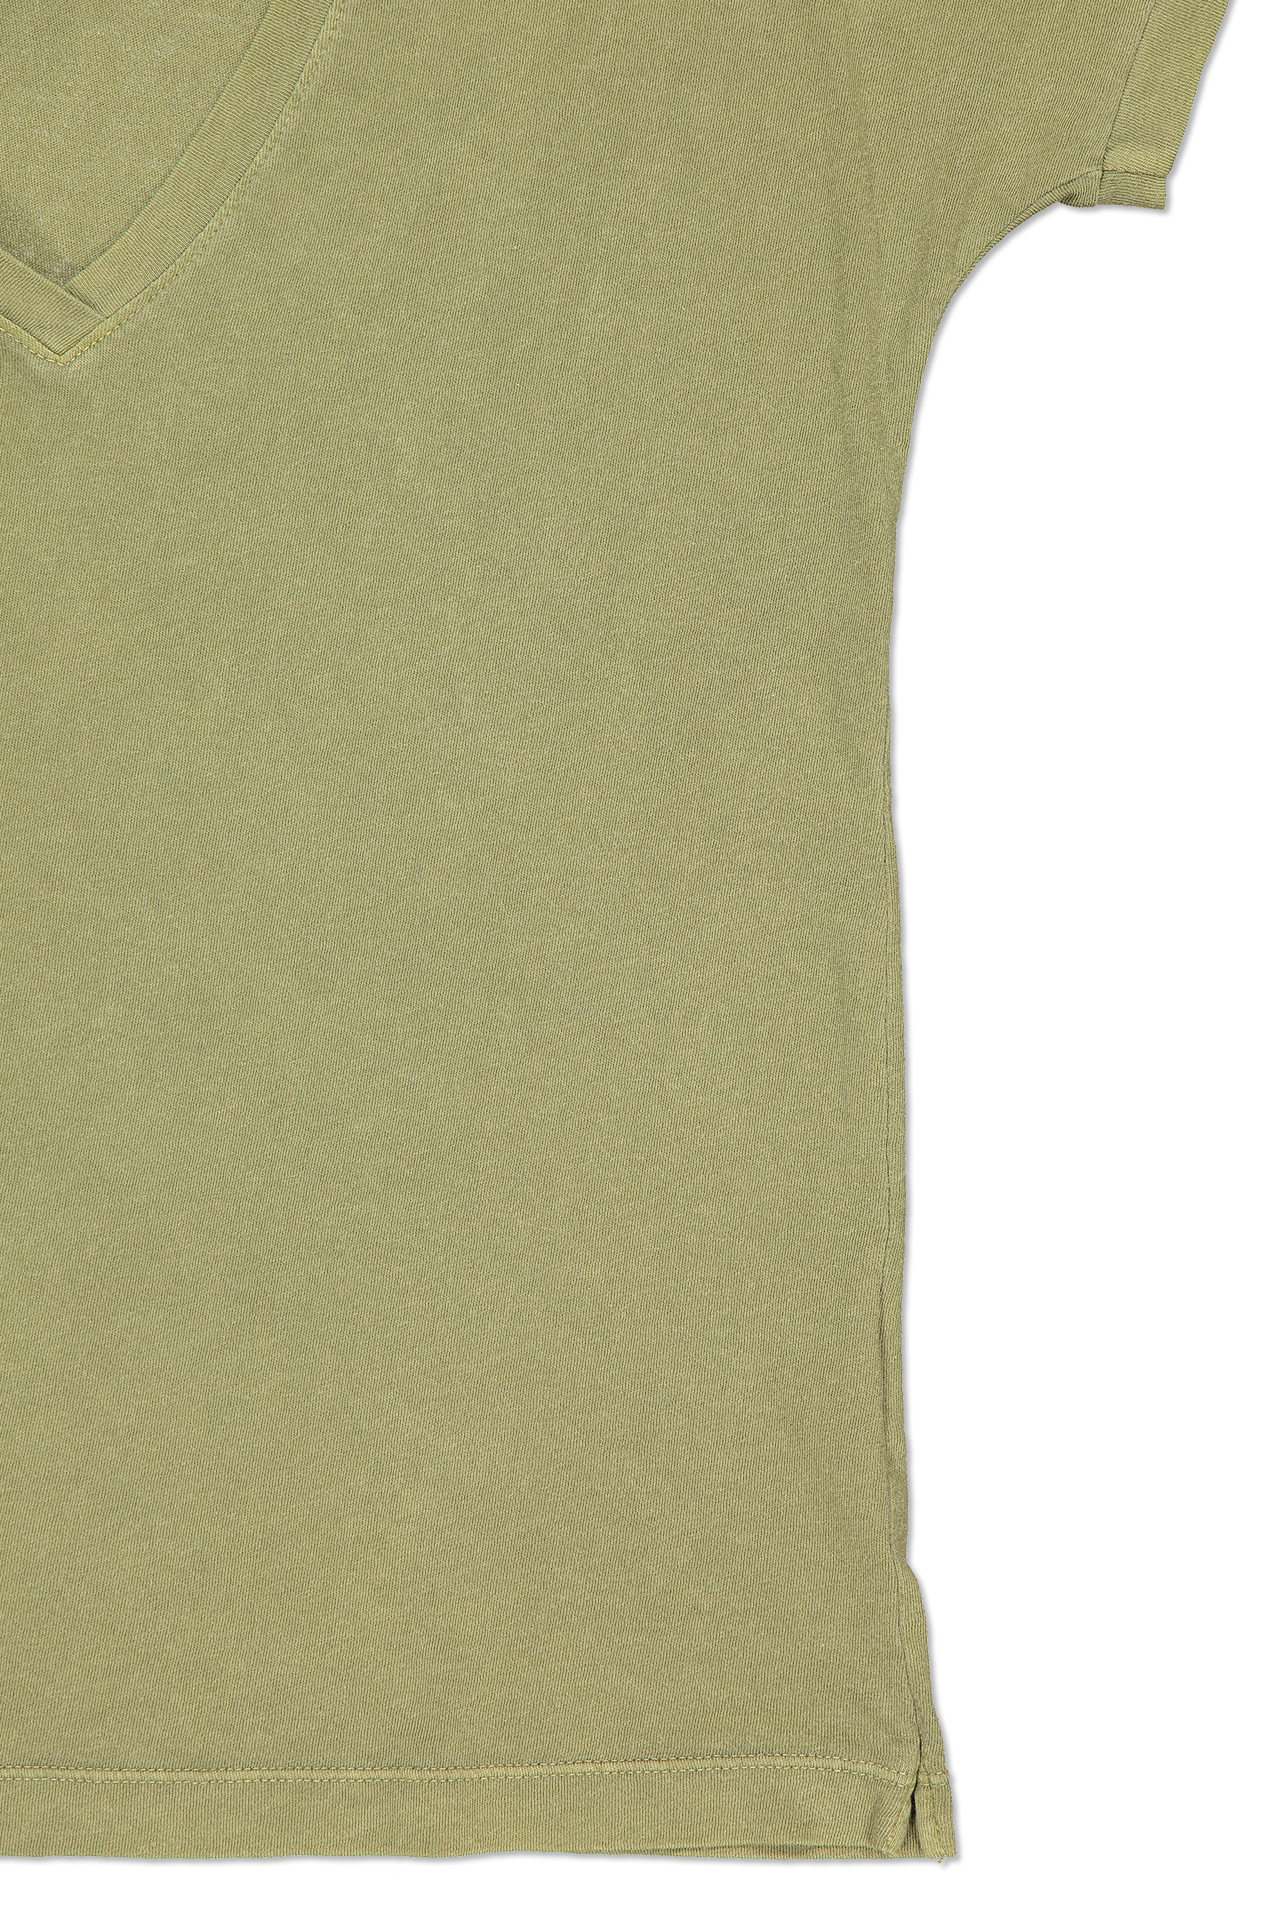 Side seam and Short sleeve detail image of Alex Mill Women's Laundered Cotton V-Neck Tee Army Olive